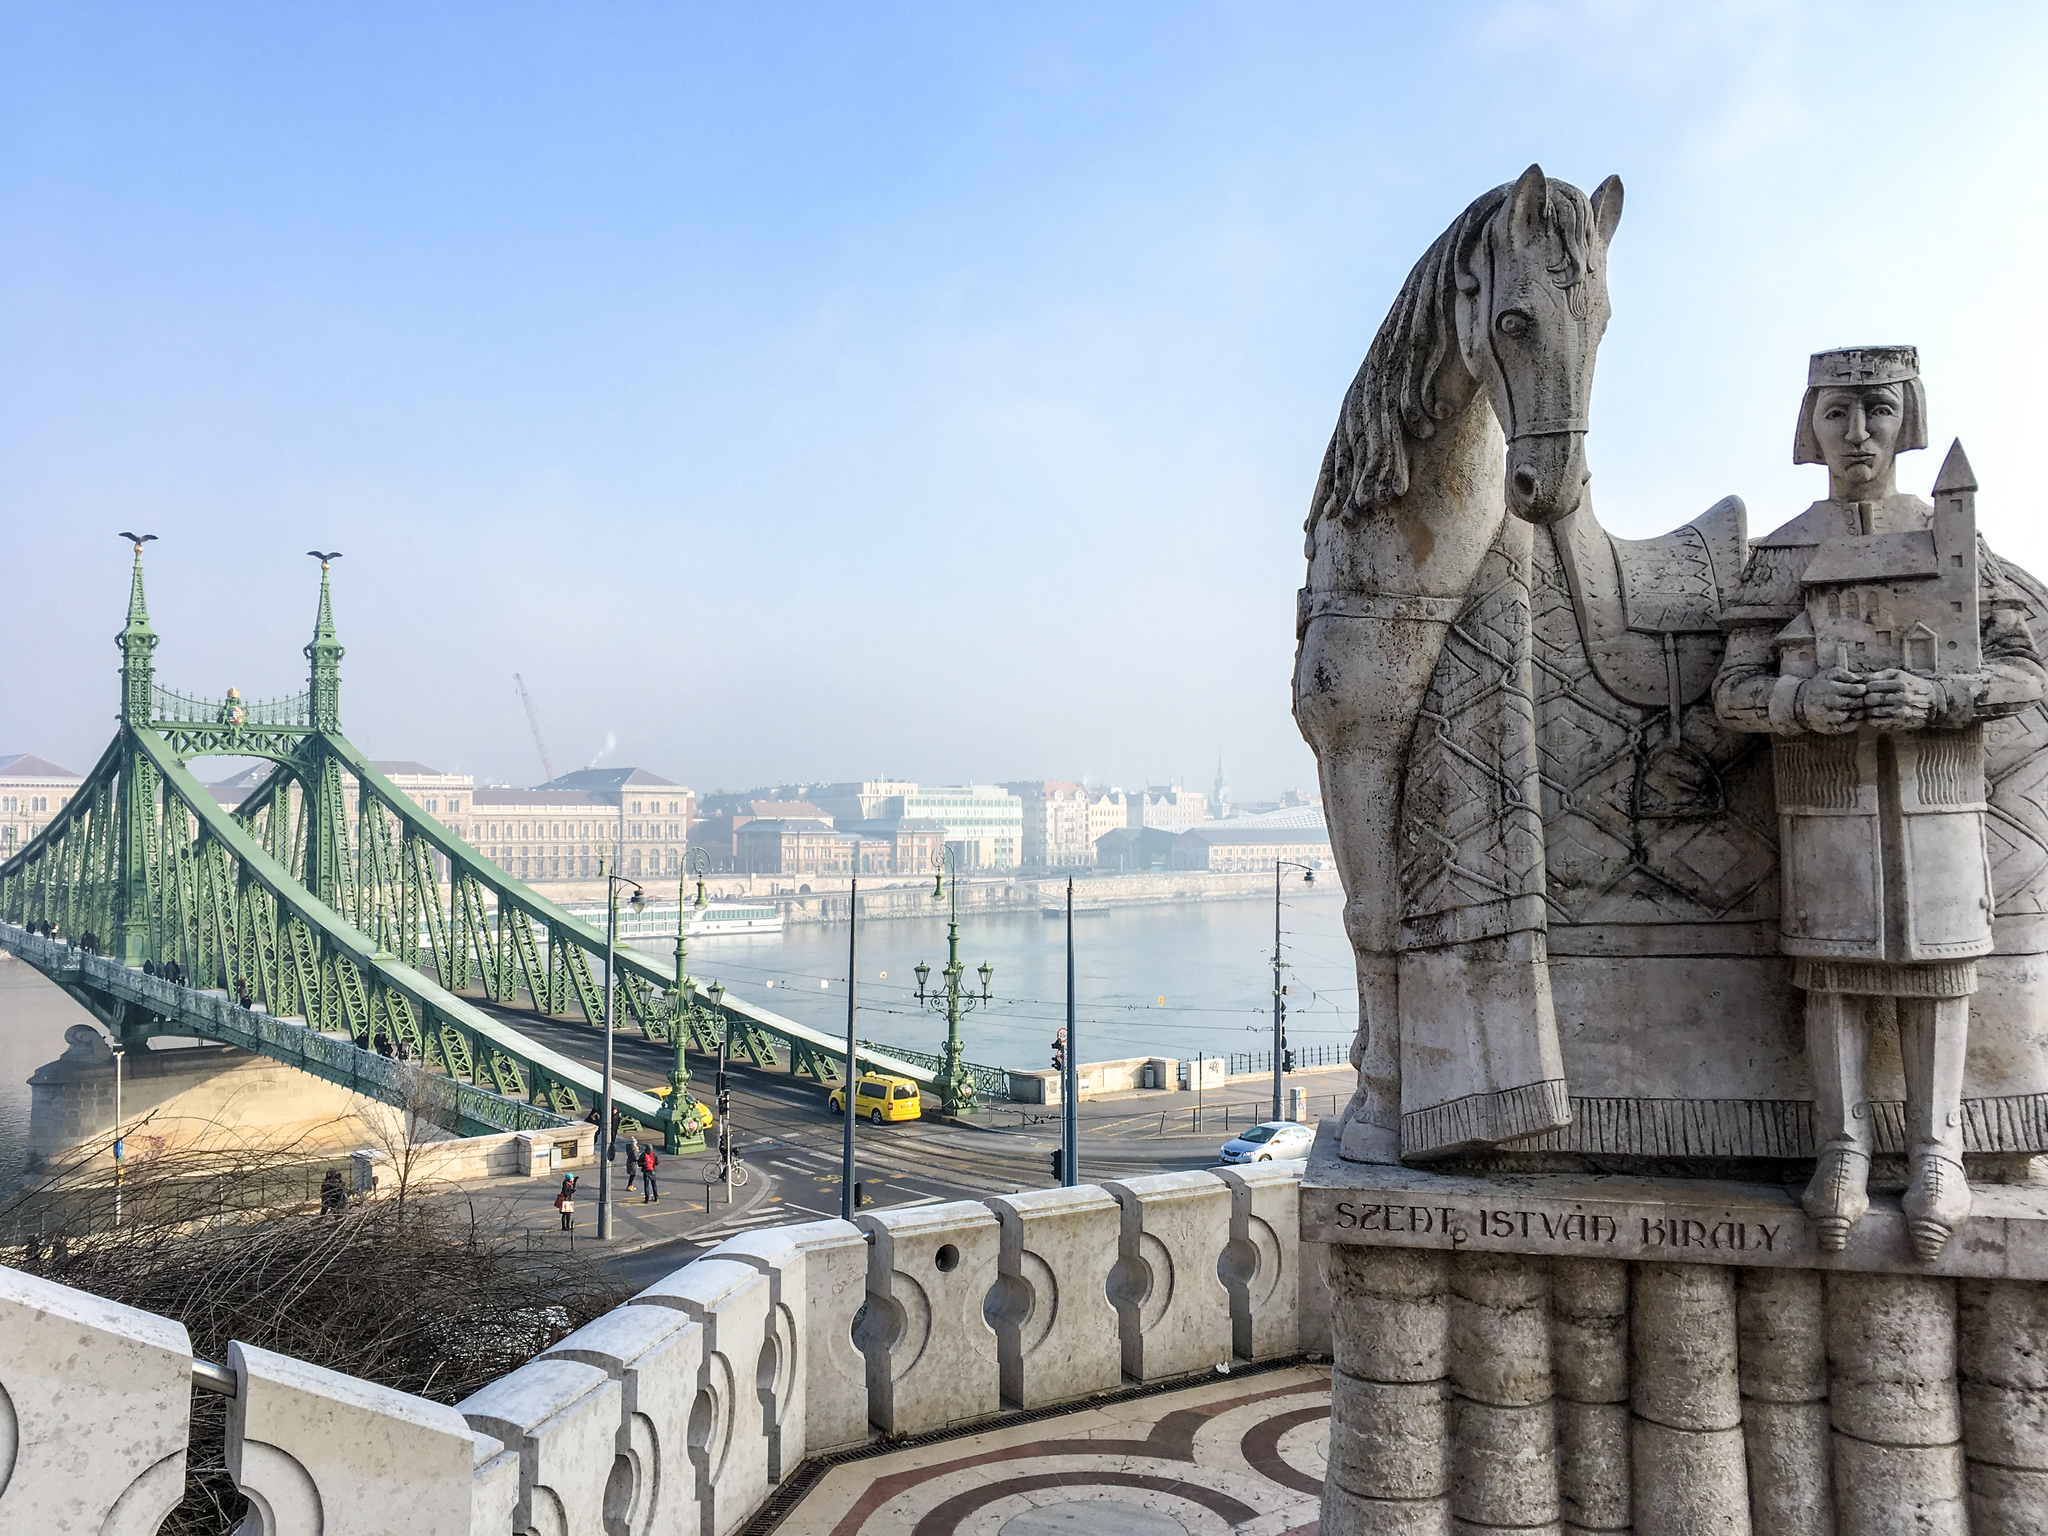 what to wear in budapest in february: warm clothes for hiking up the hillside